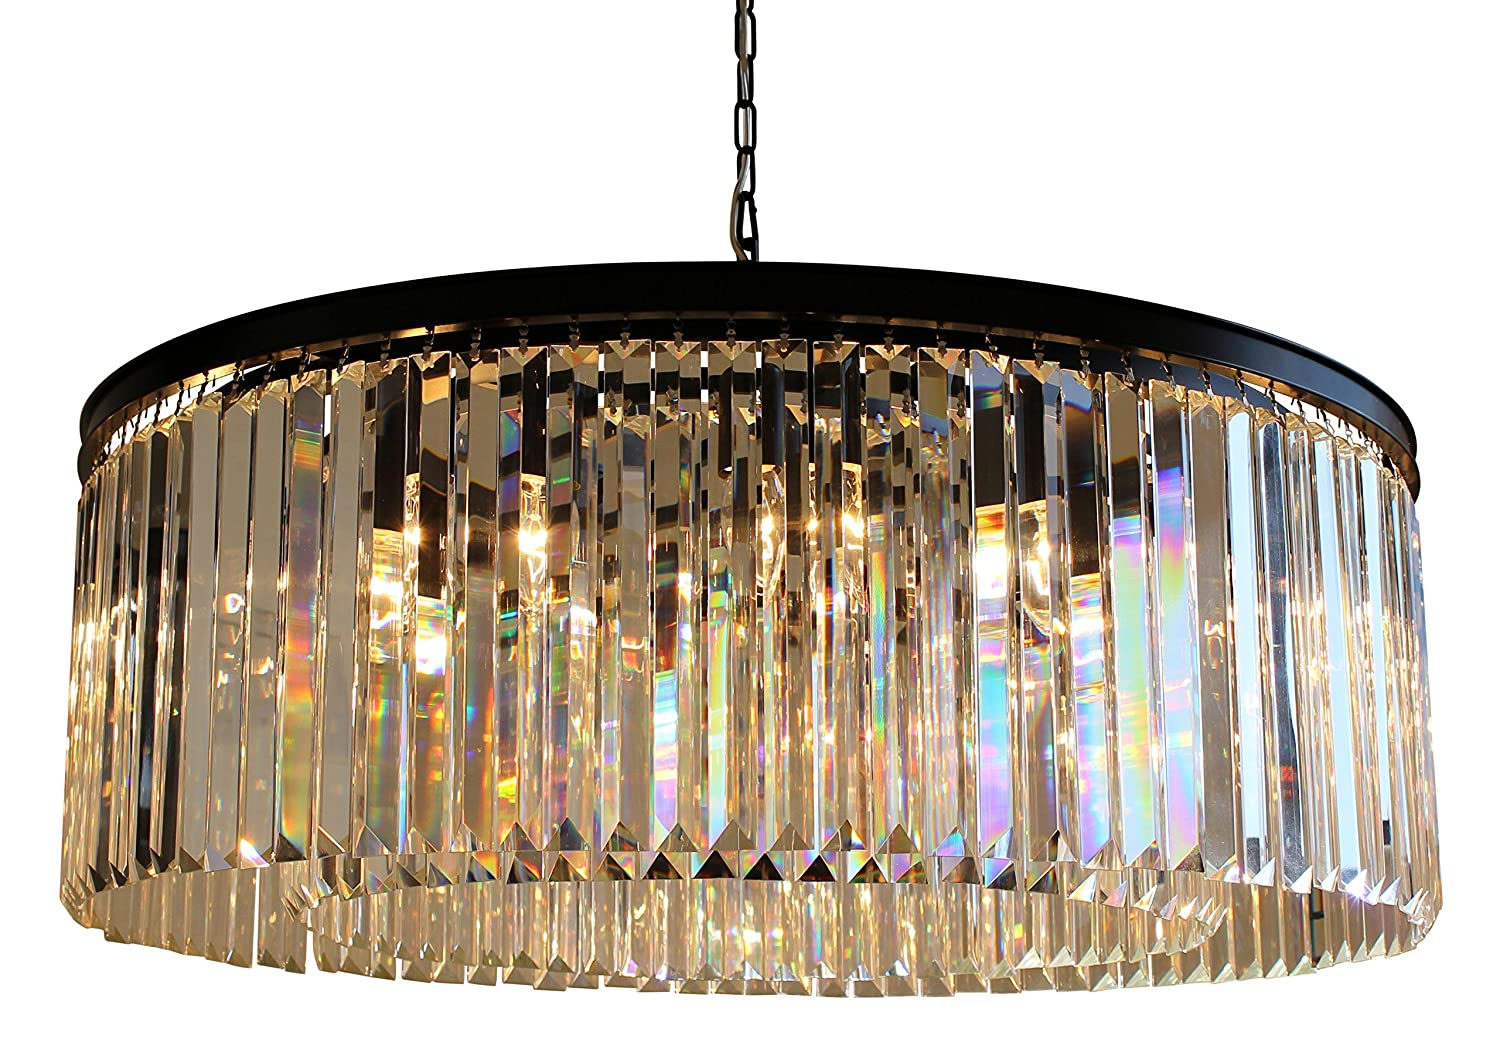 Dangelo 12 light round clear glass fringe prism chandelier dangelo 12 light round clear glass fringe prism chandelier amazon arubaitofo Image collections